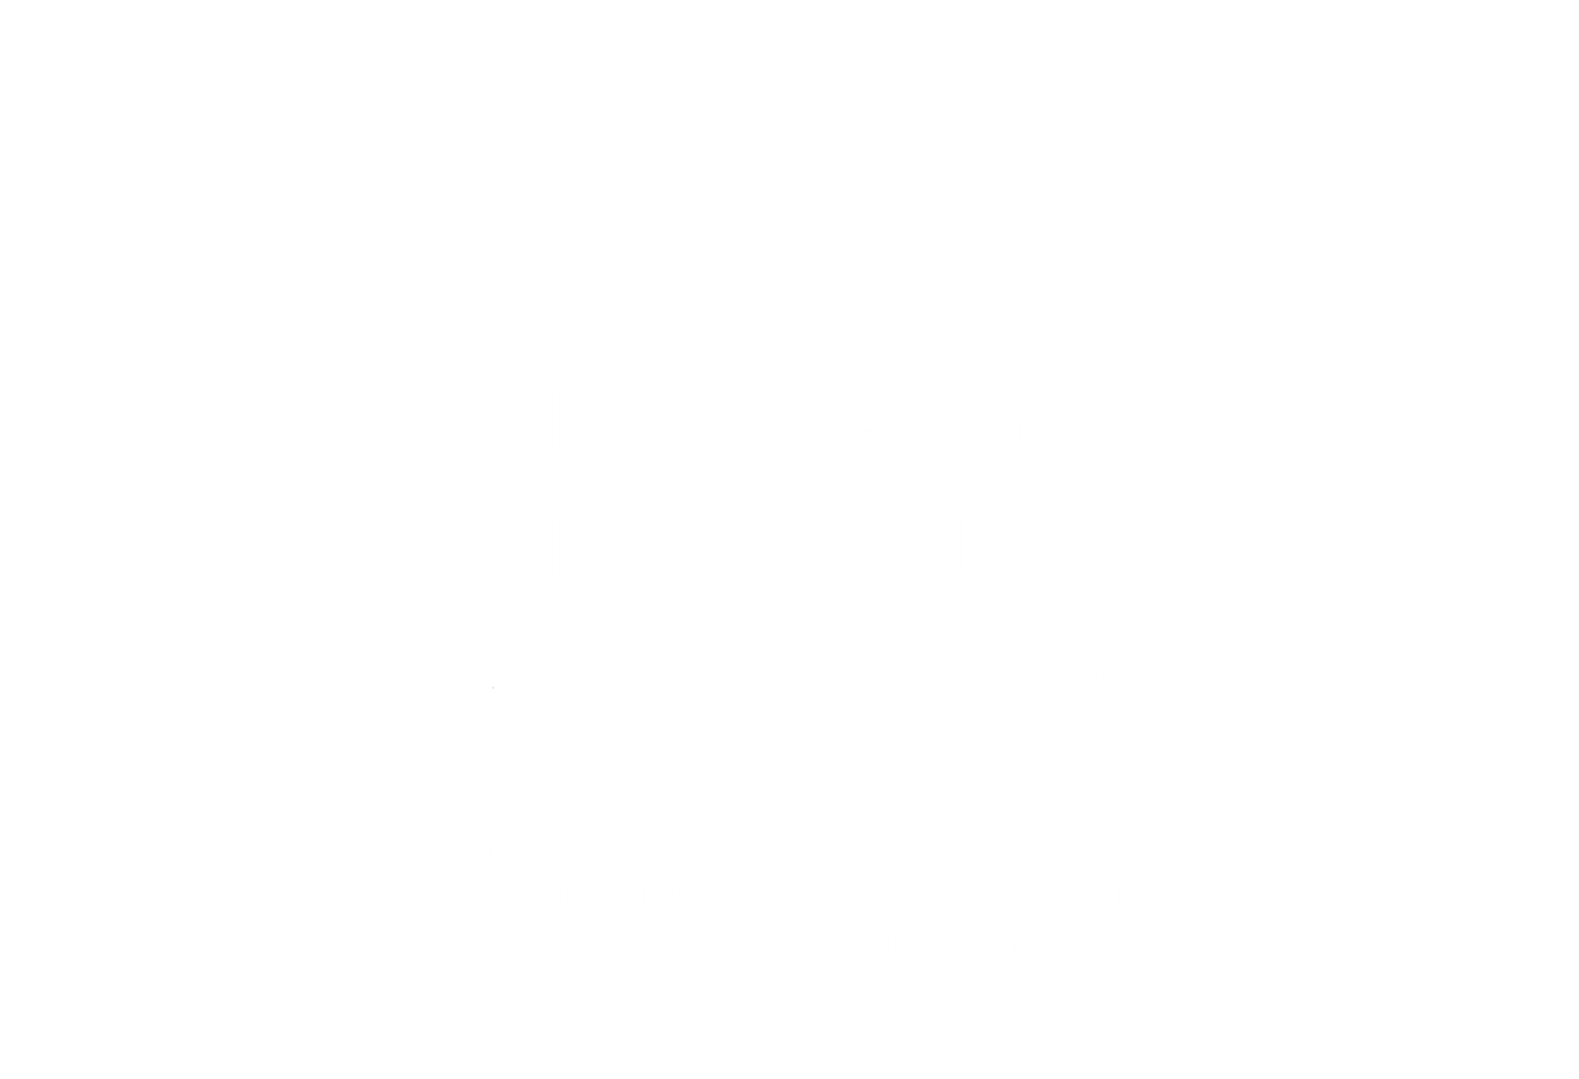 Online official selection - London Lift-